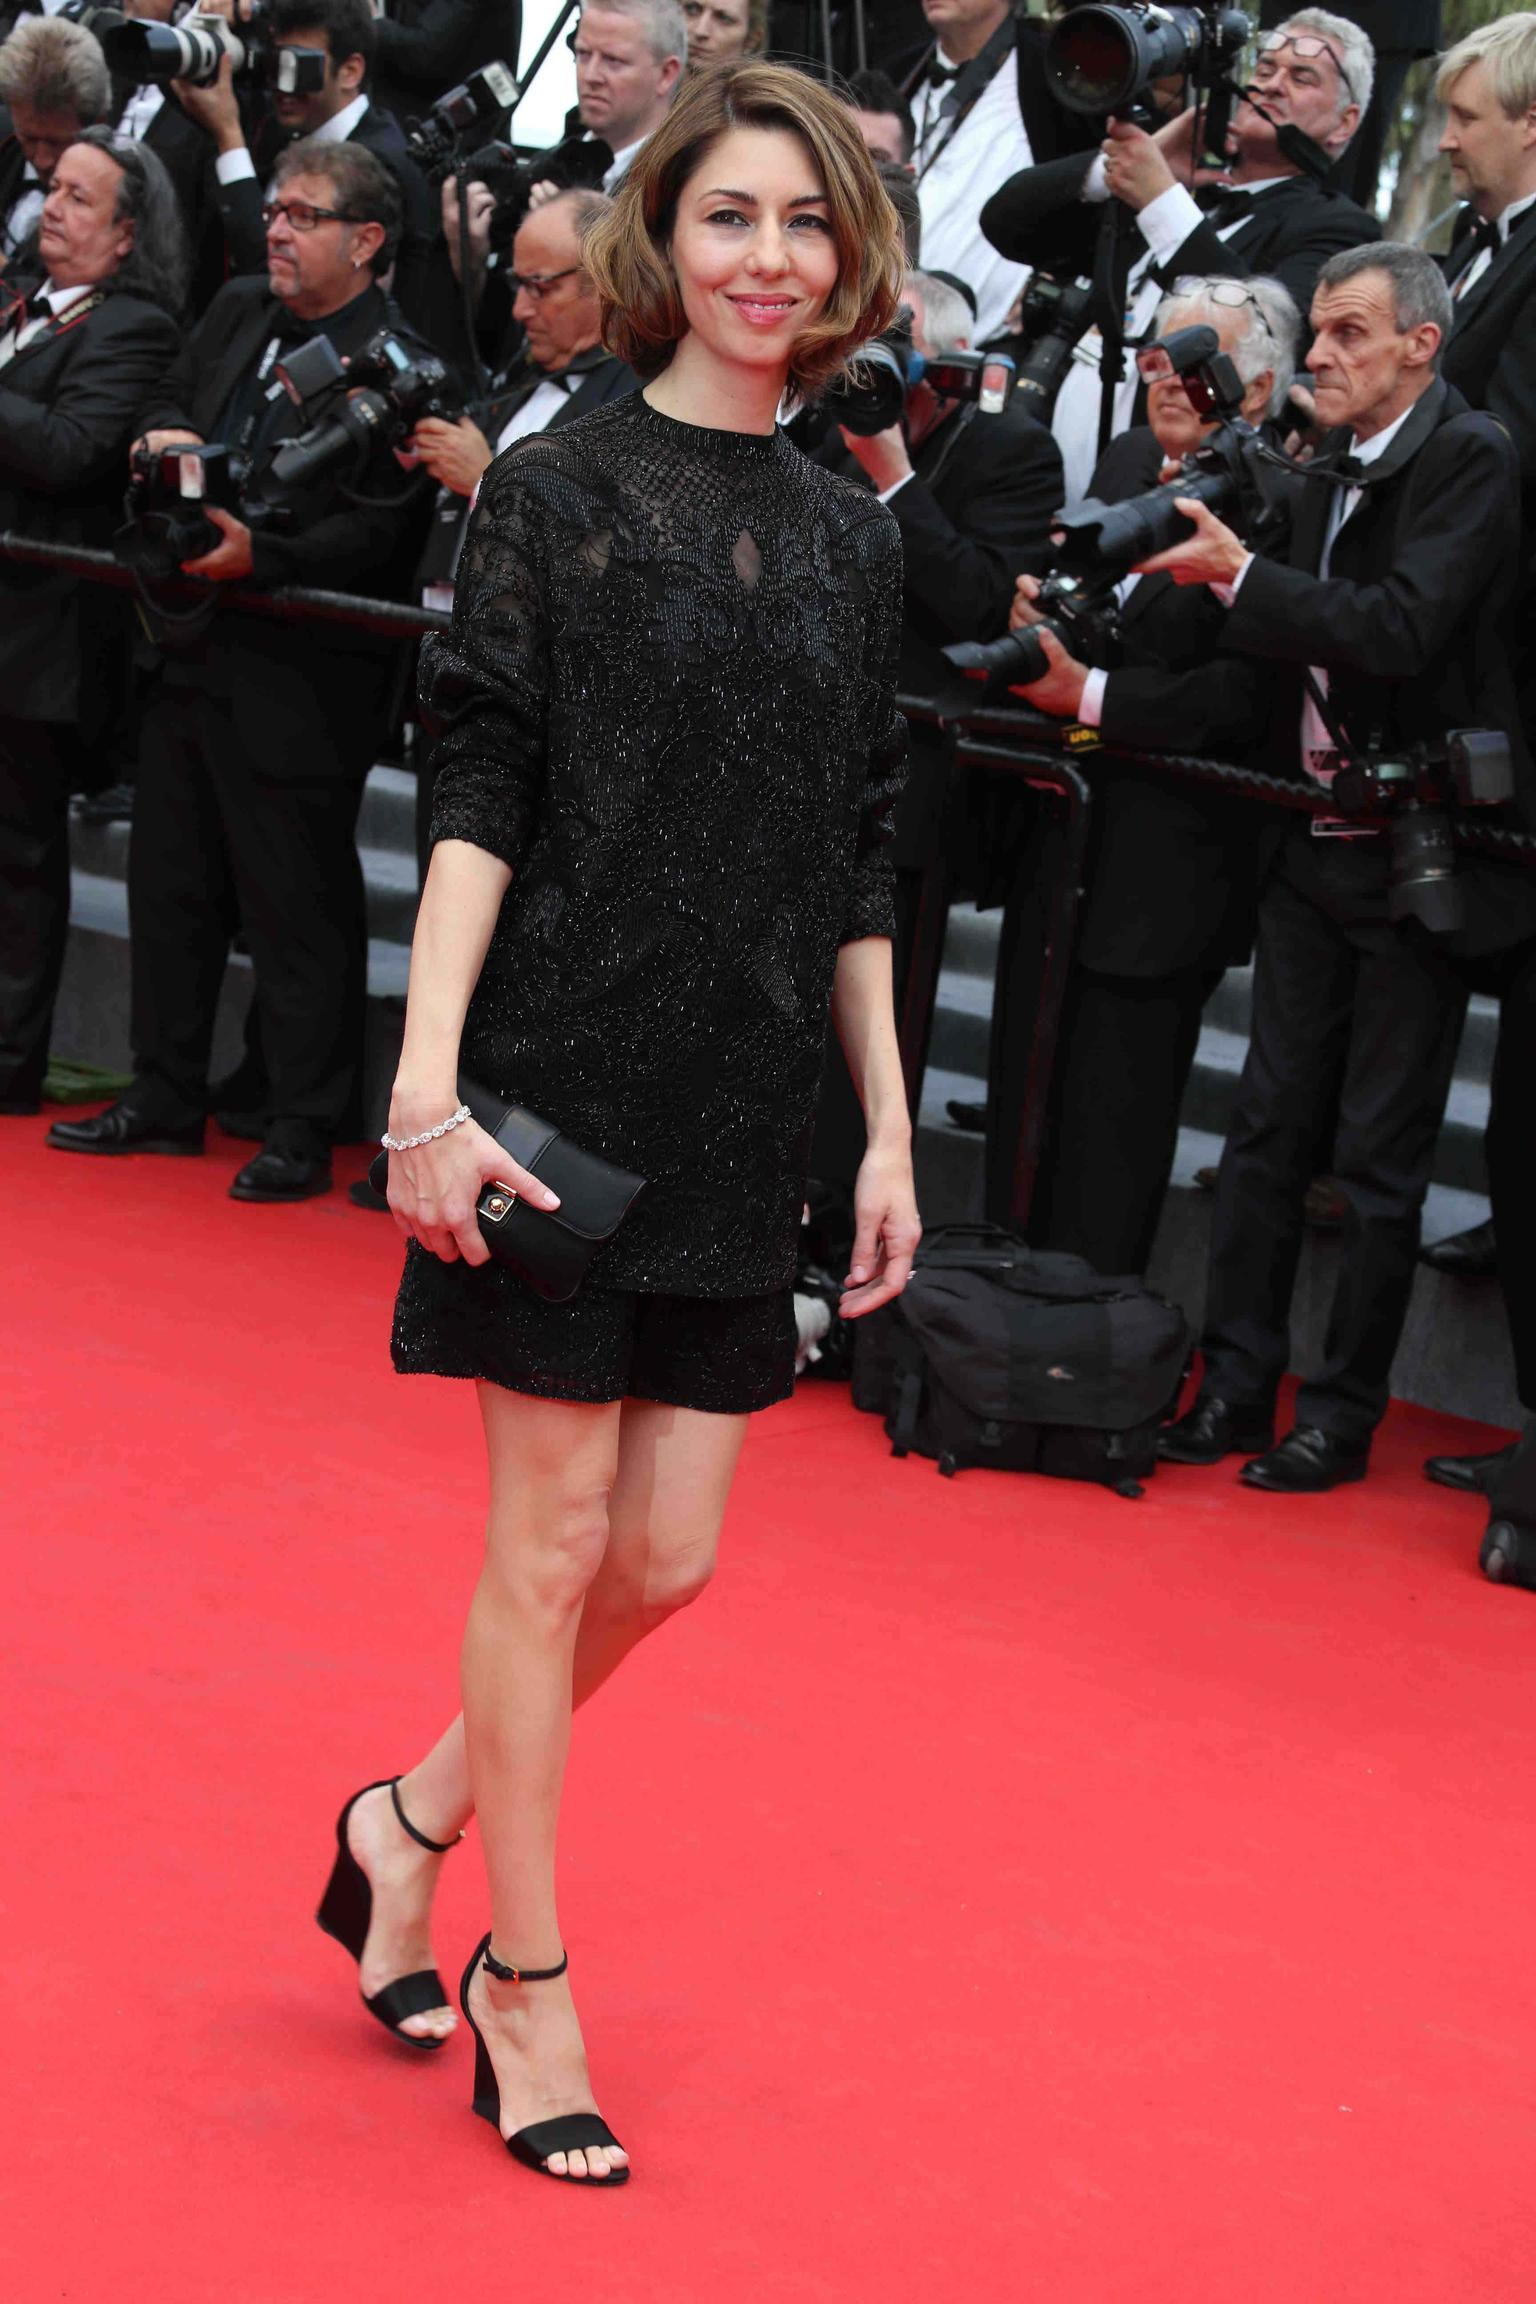 Director Sofia Coppola - member of the 67th Annual Cannes International Film Festival Jury - dressed up her black dress with a white diamond line bracelet by Chopard